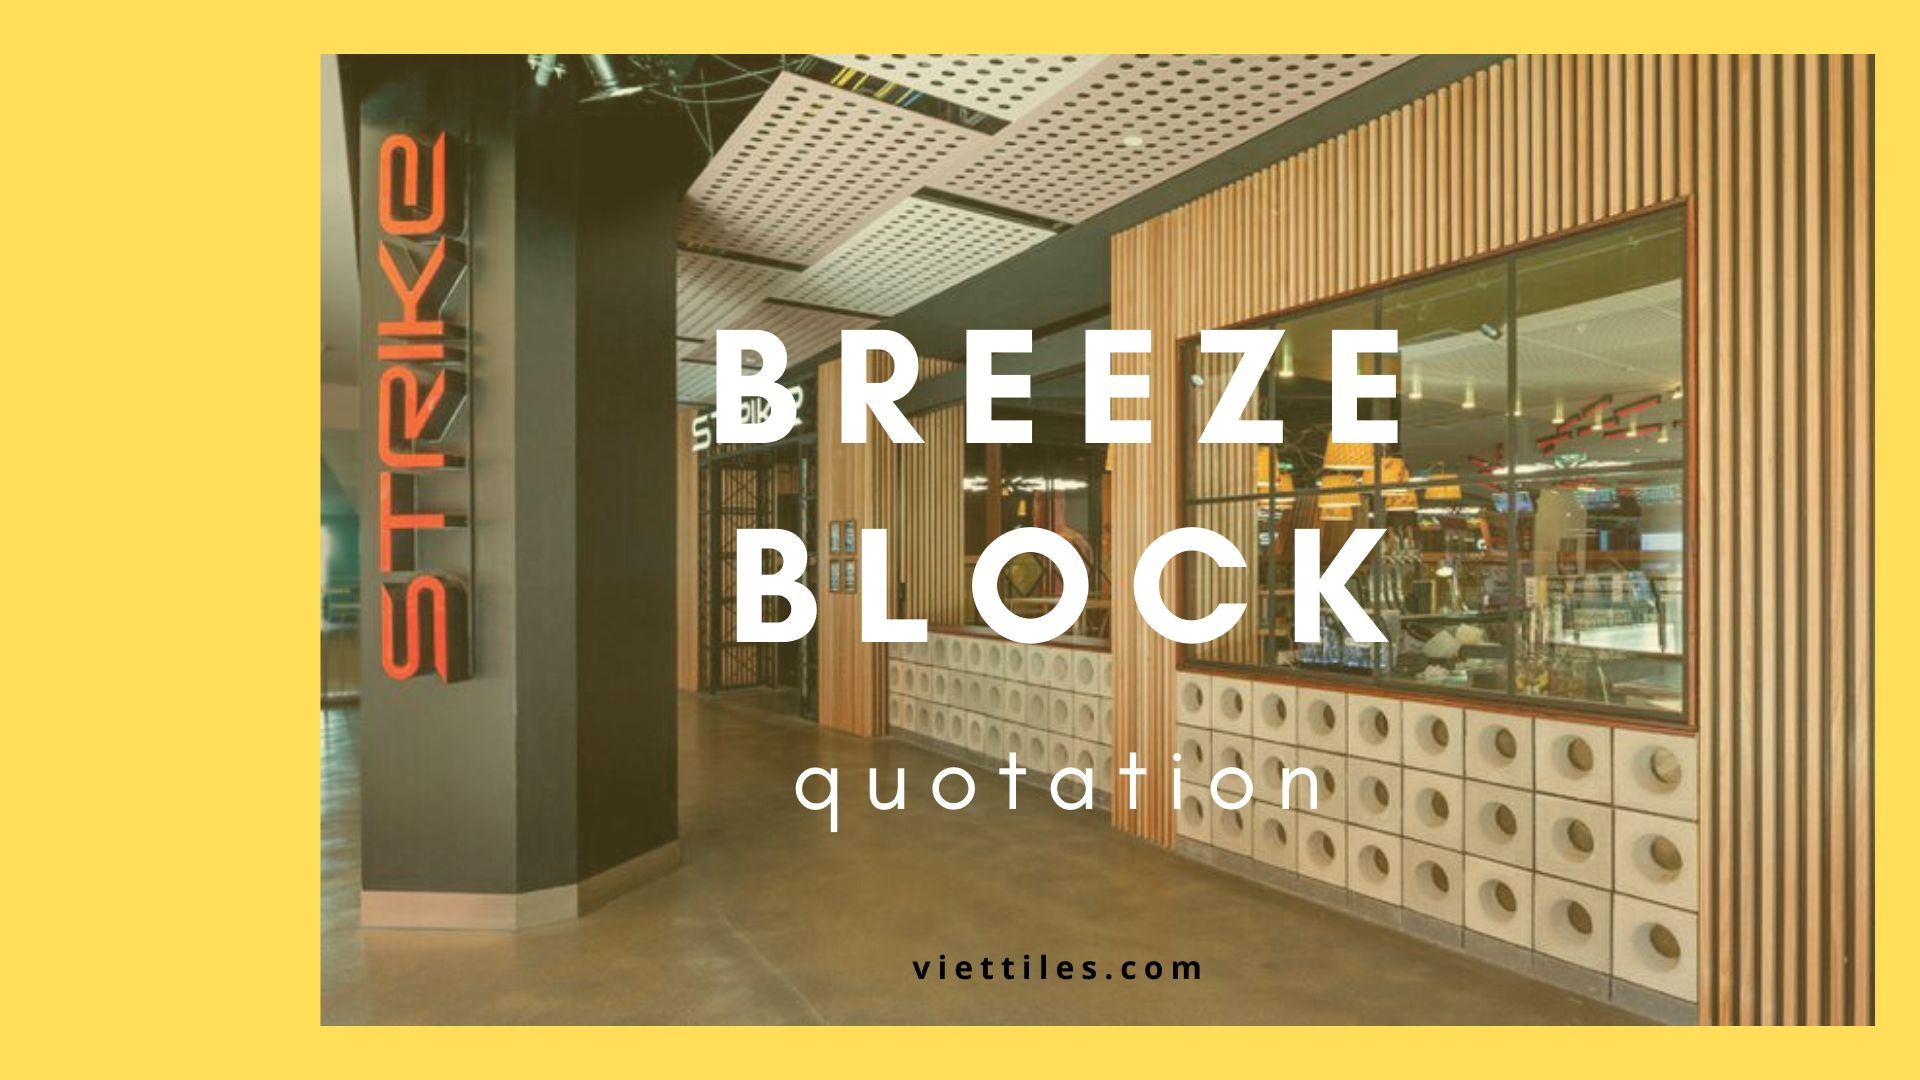 Quotation of breeze block in Ho Chi Minh City